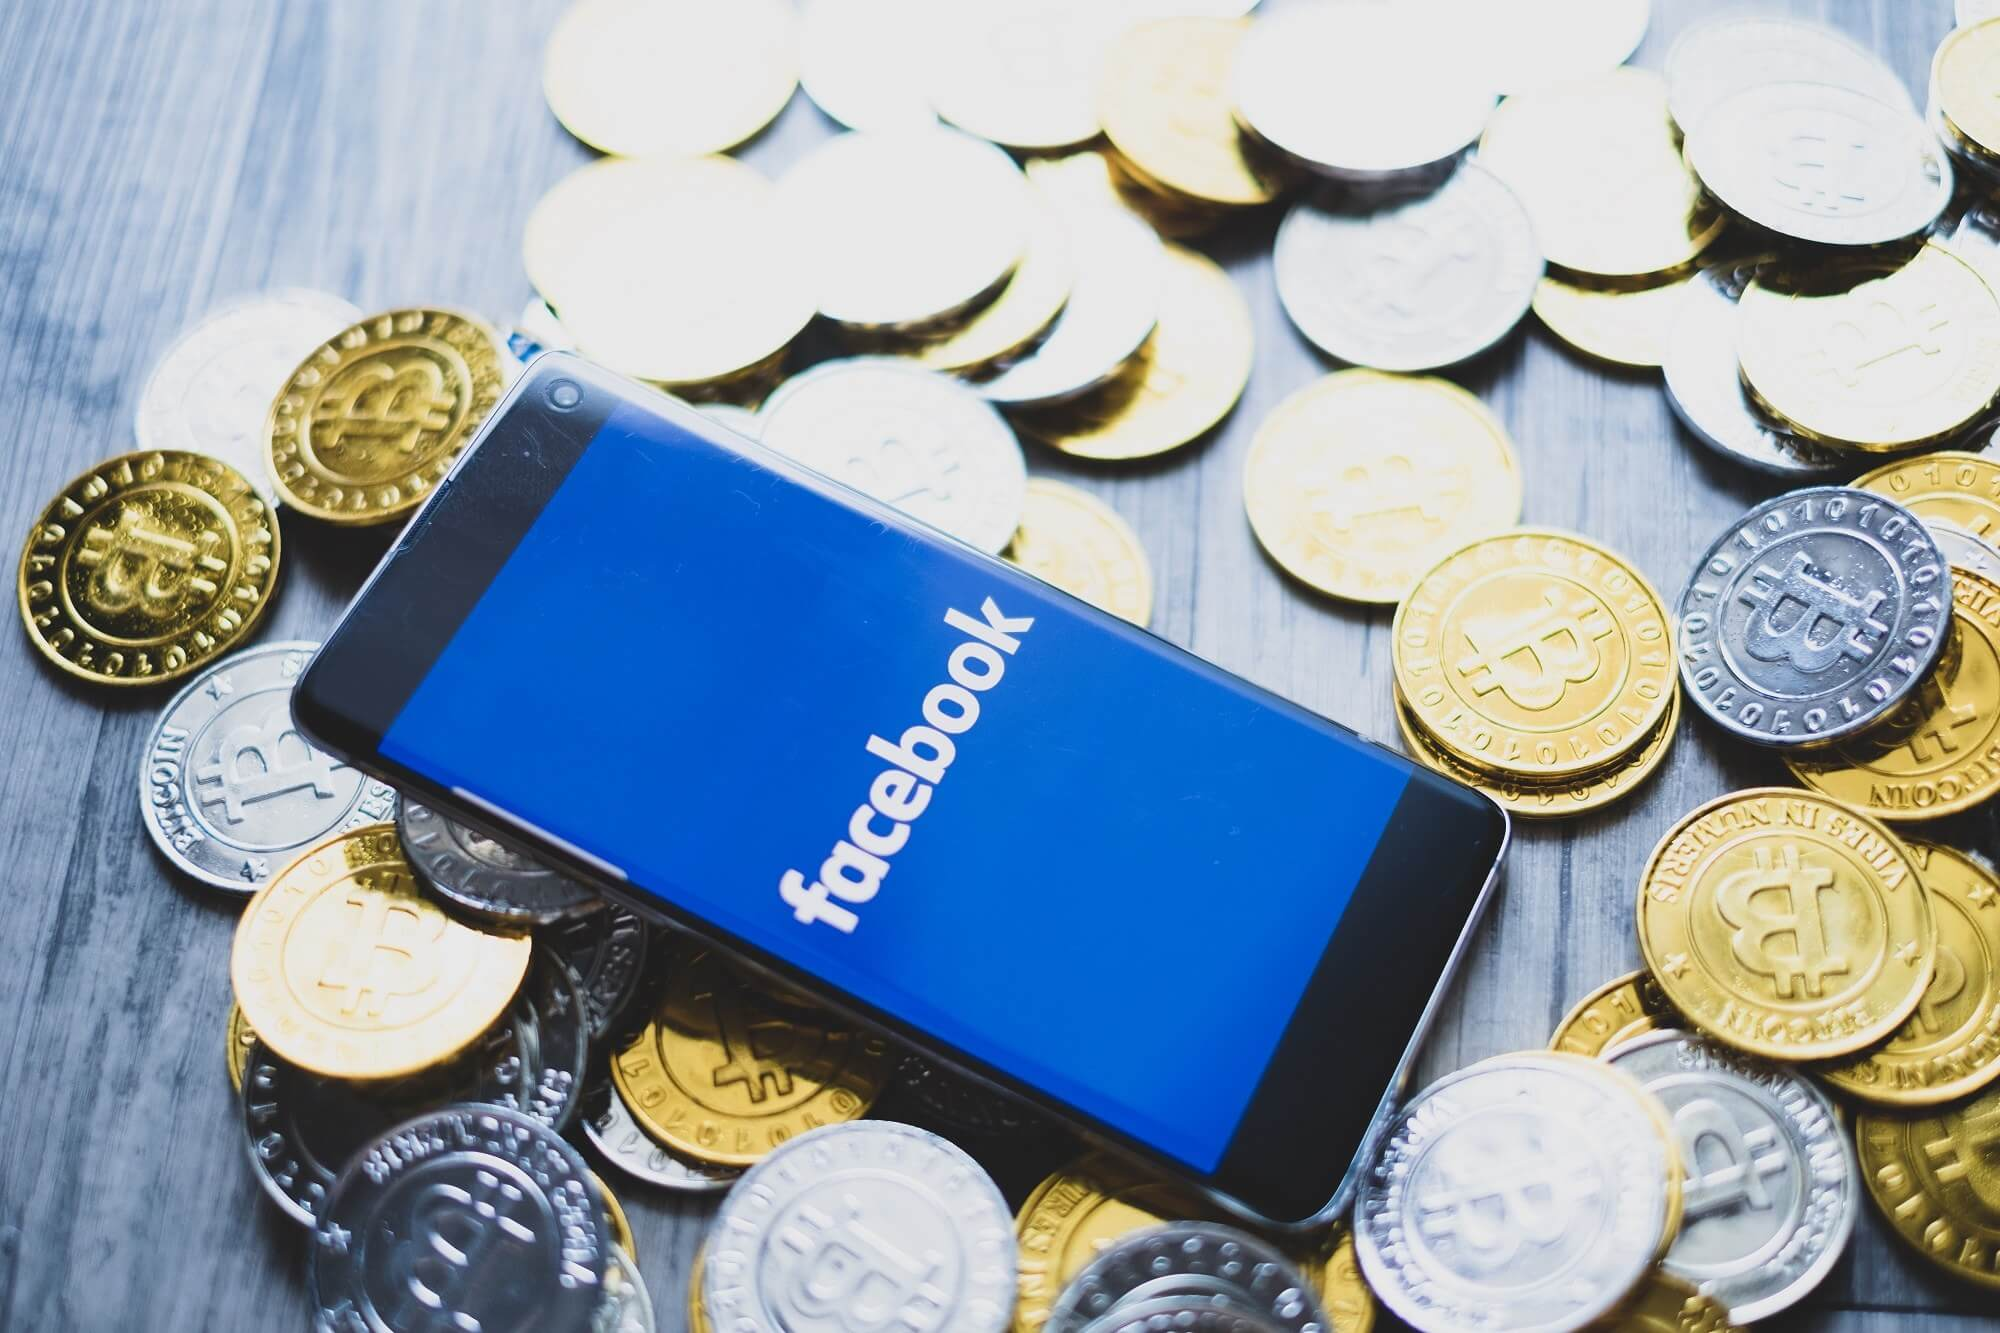 Visa, Mastercard, Stripe, and eBay all abandon Facebook's Libra Association